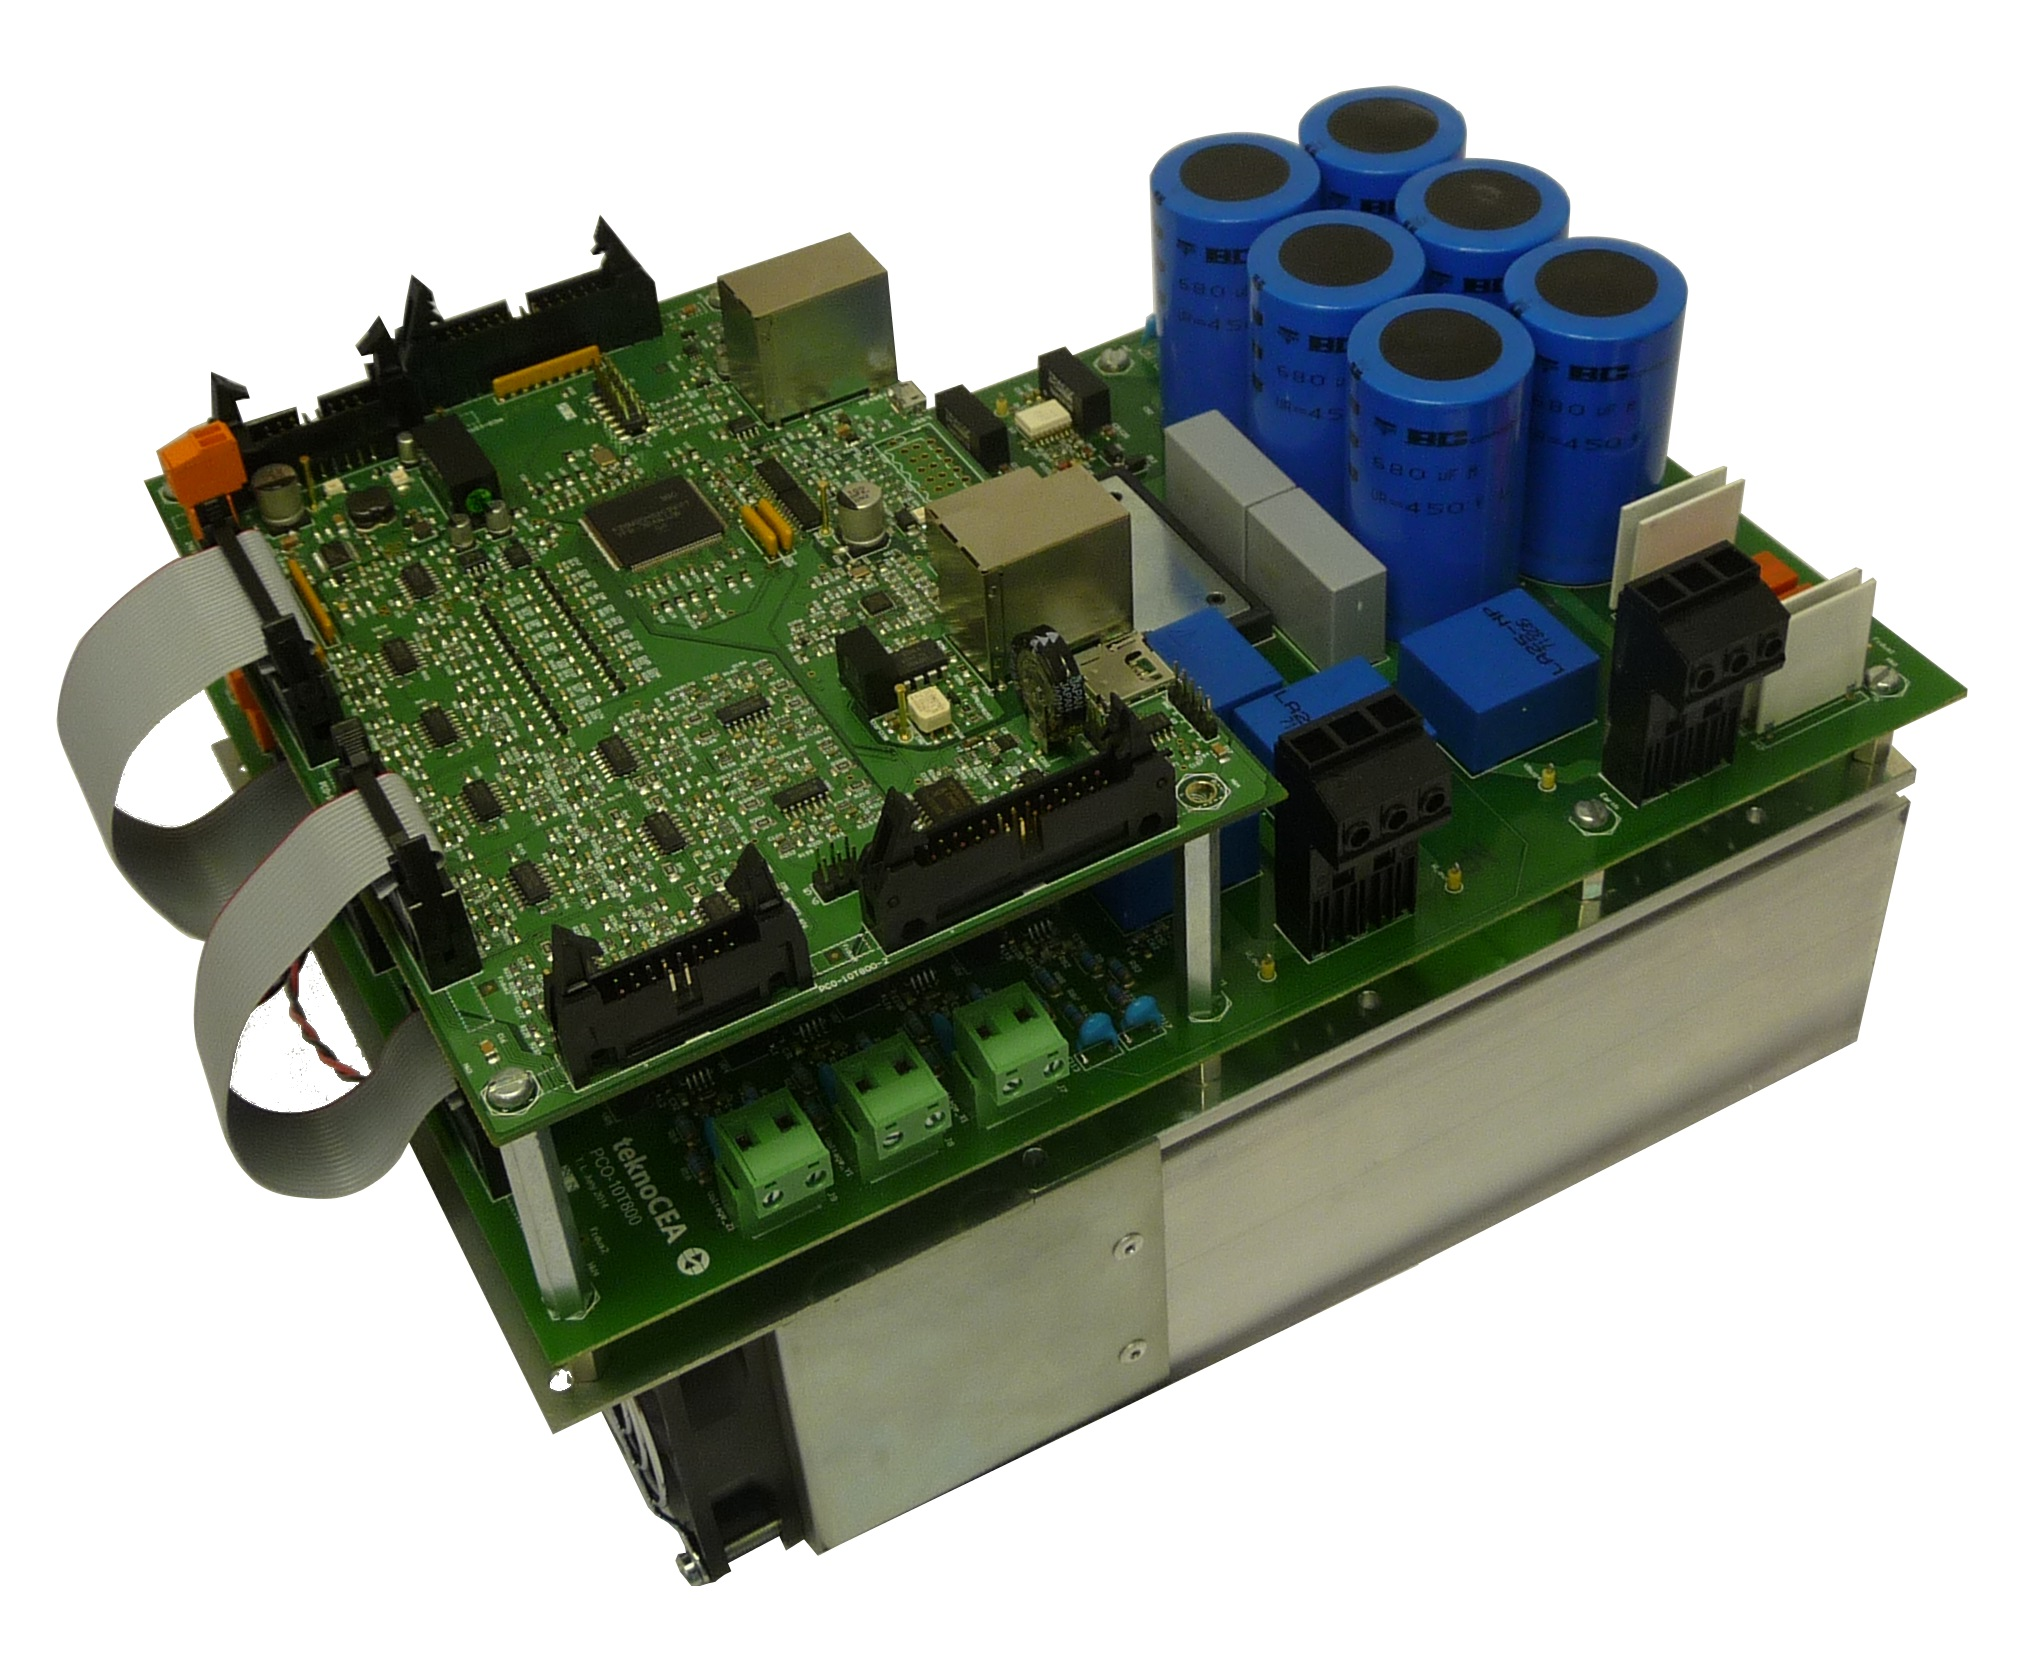 PCO-10T800 power converter general view